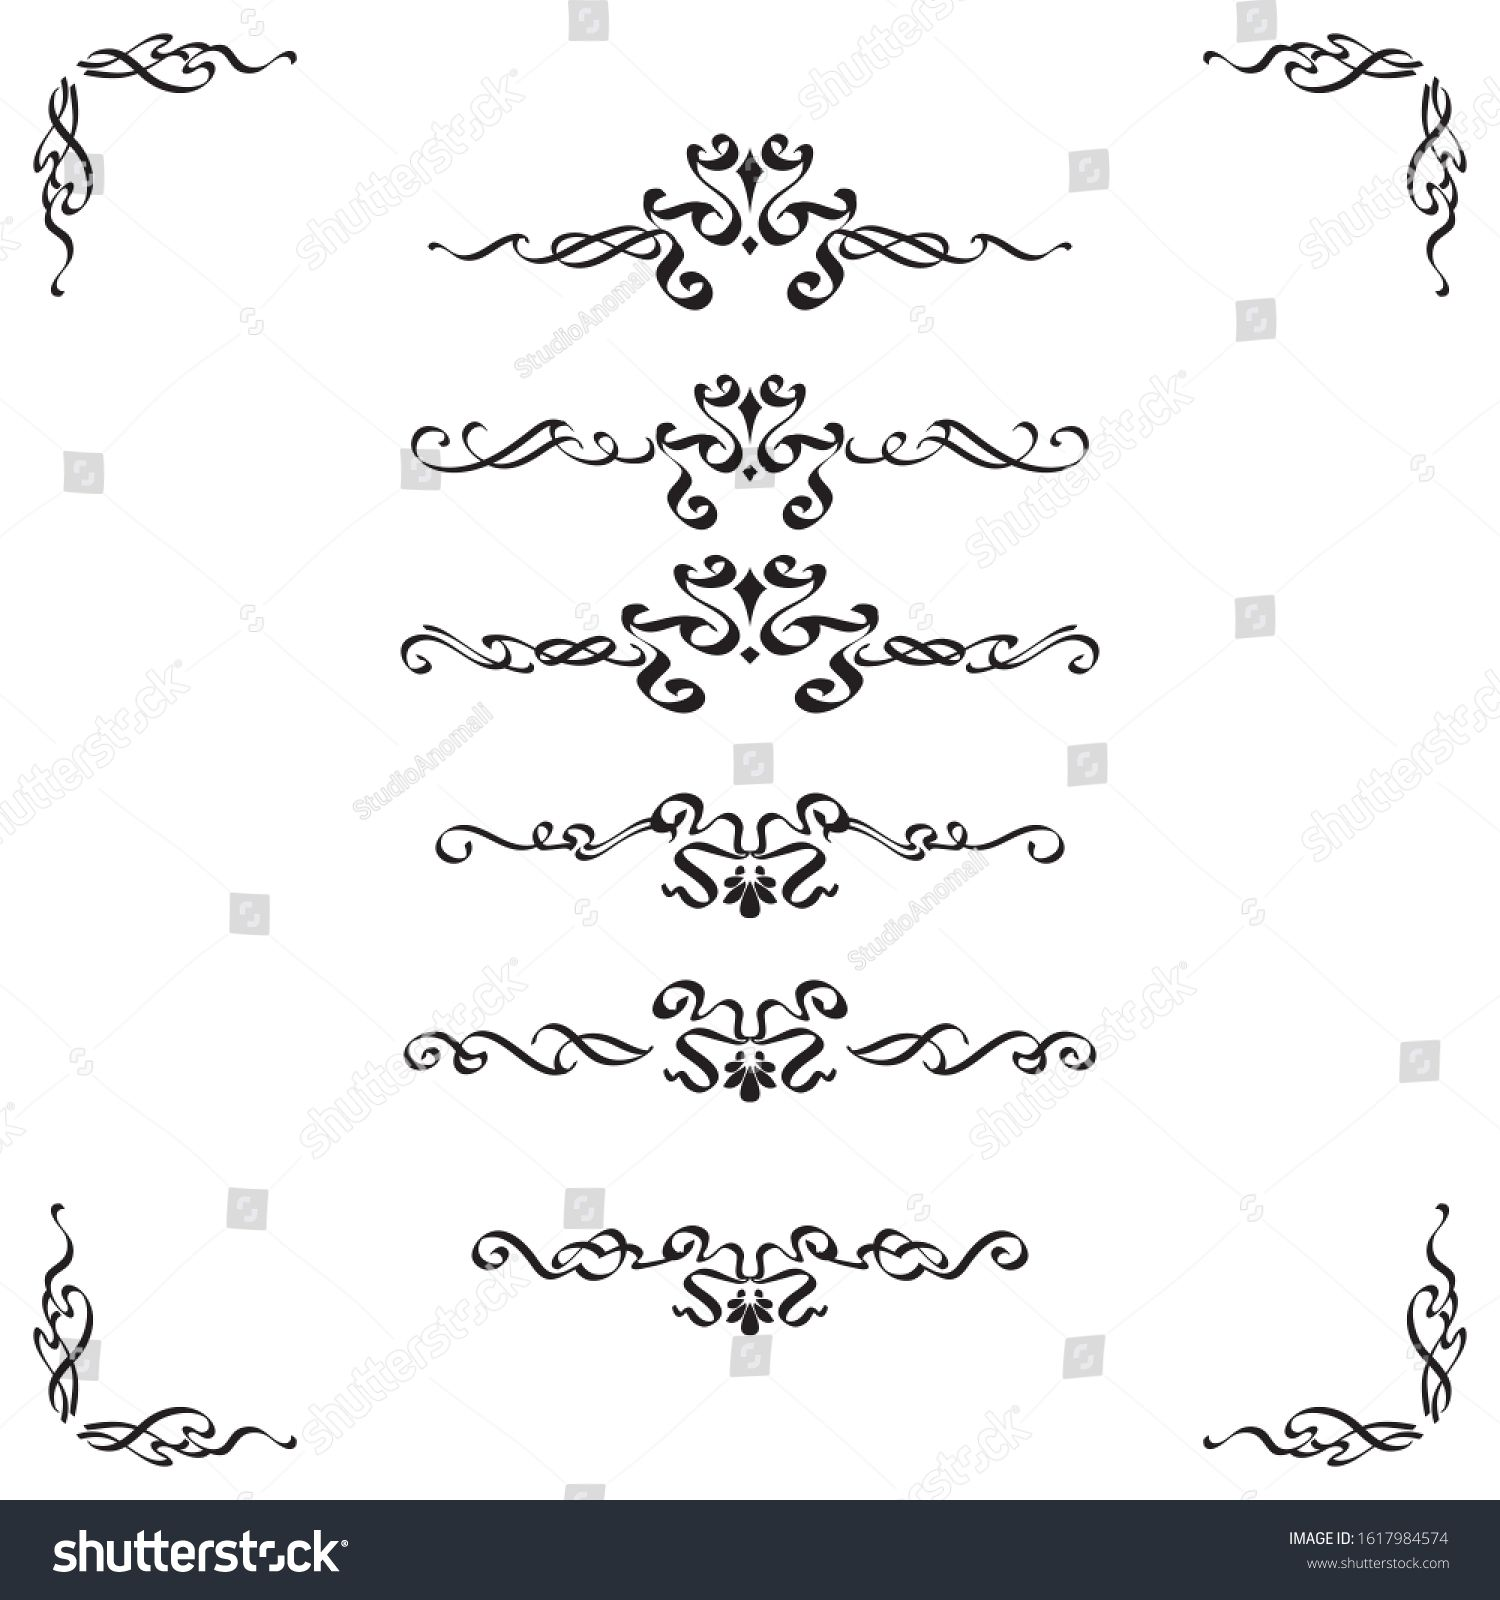 Classic Ornament Frame Vintage Border Art Stock Vector Royalty Free 1617984574 In 2020 Vintage Borders Ornament Frame Chinese Patterns